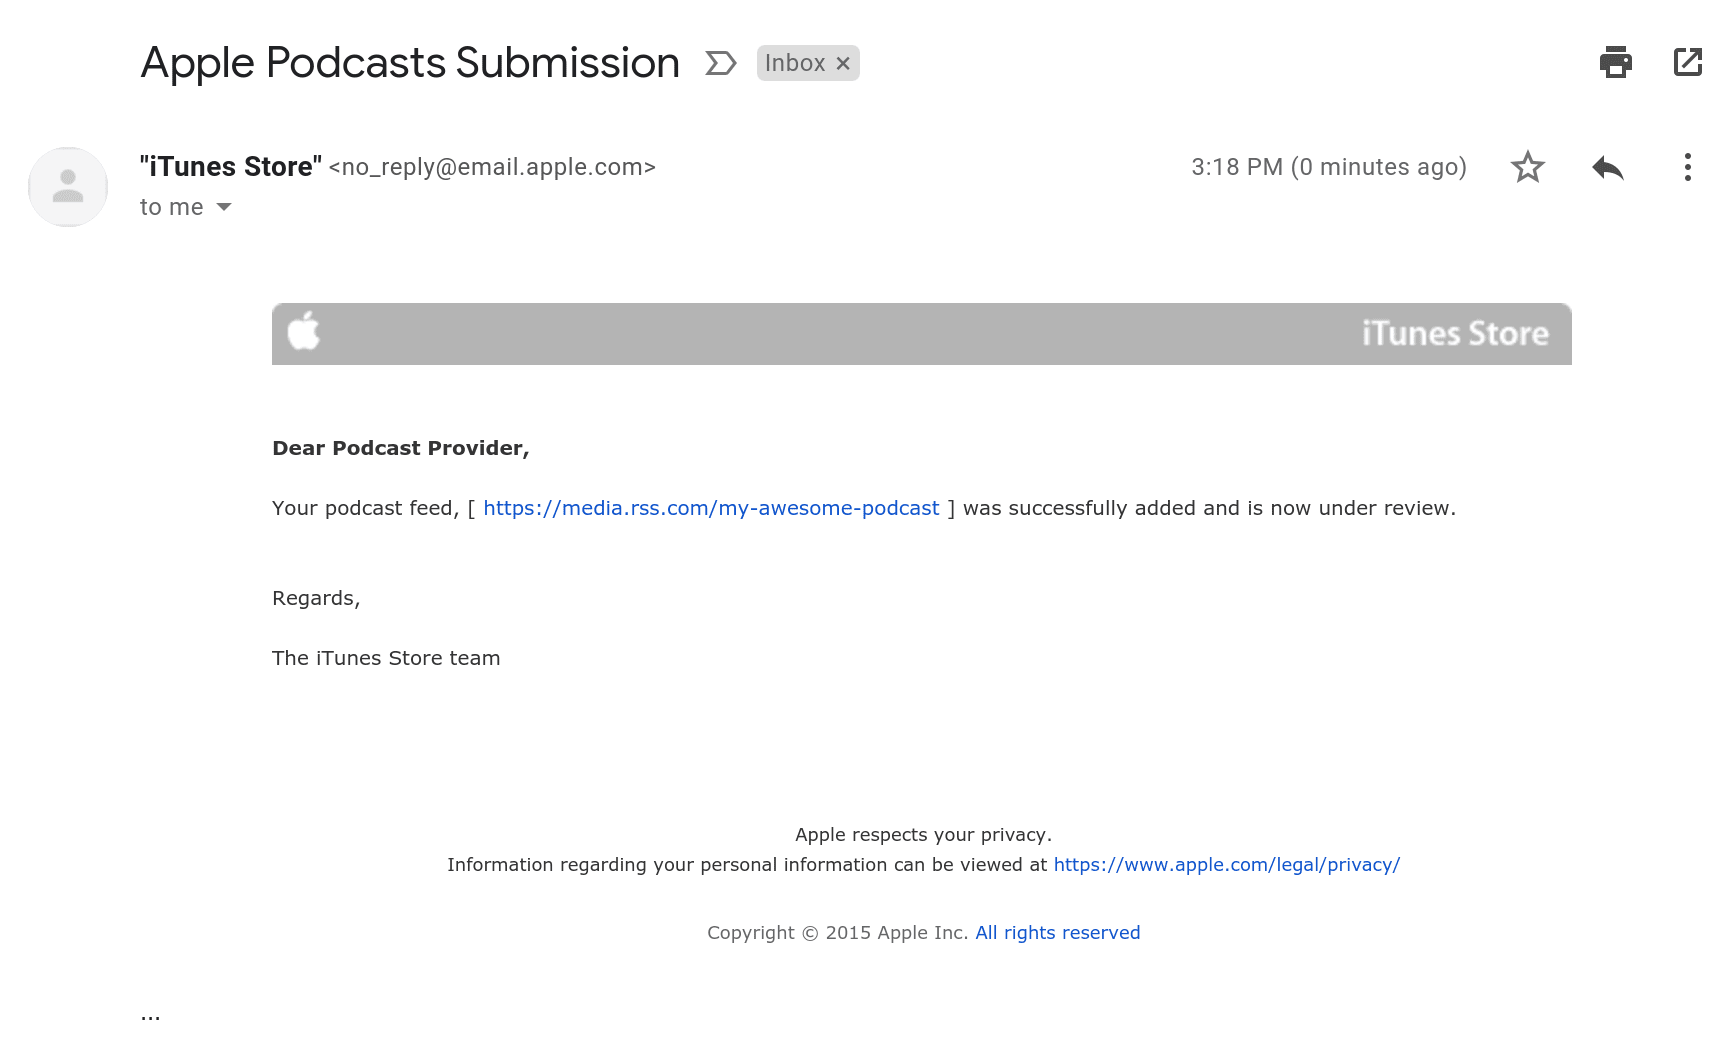 apple itunes podcast review email